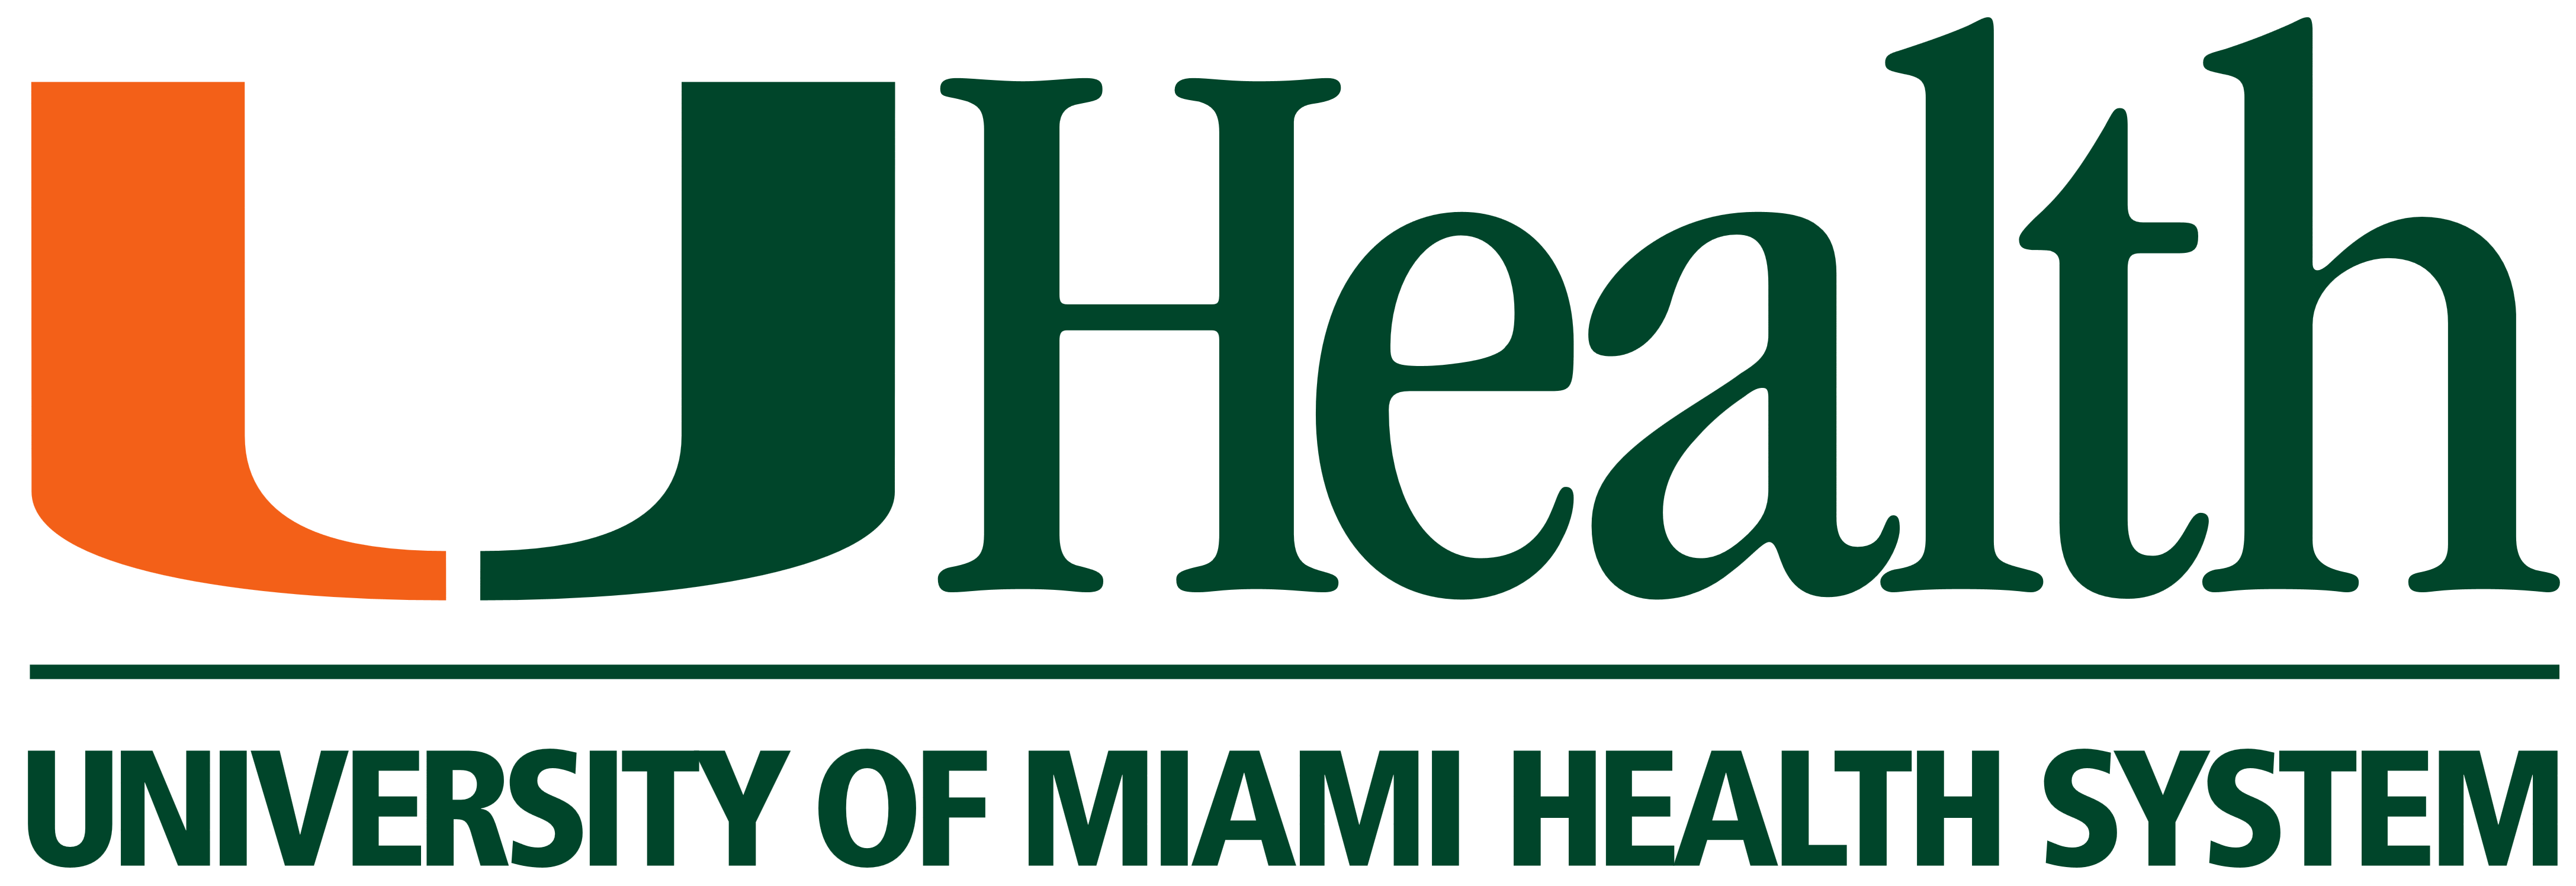 University of Miami Hospital and Clinics